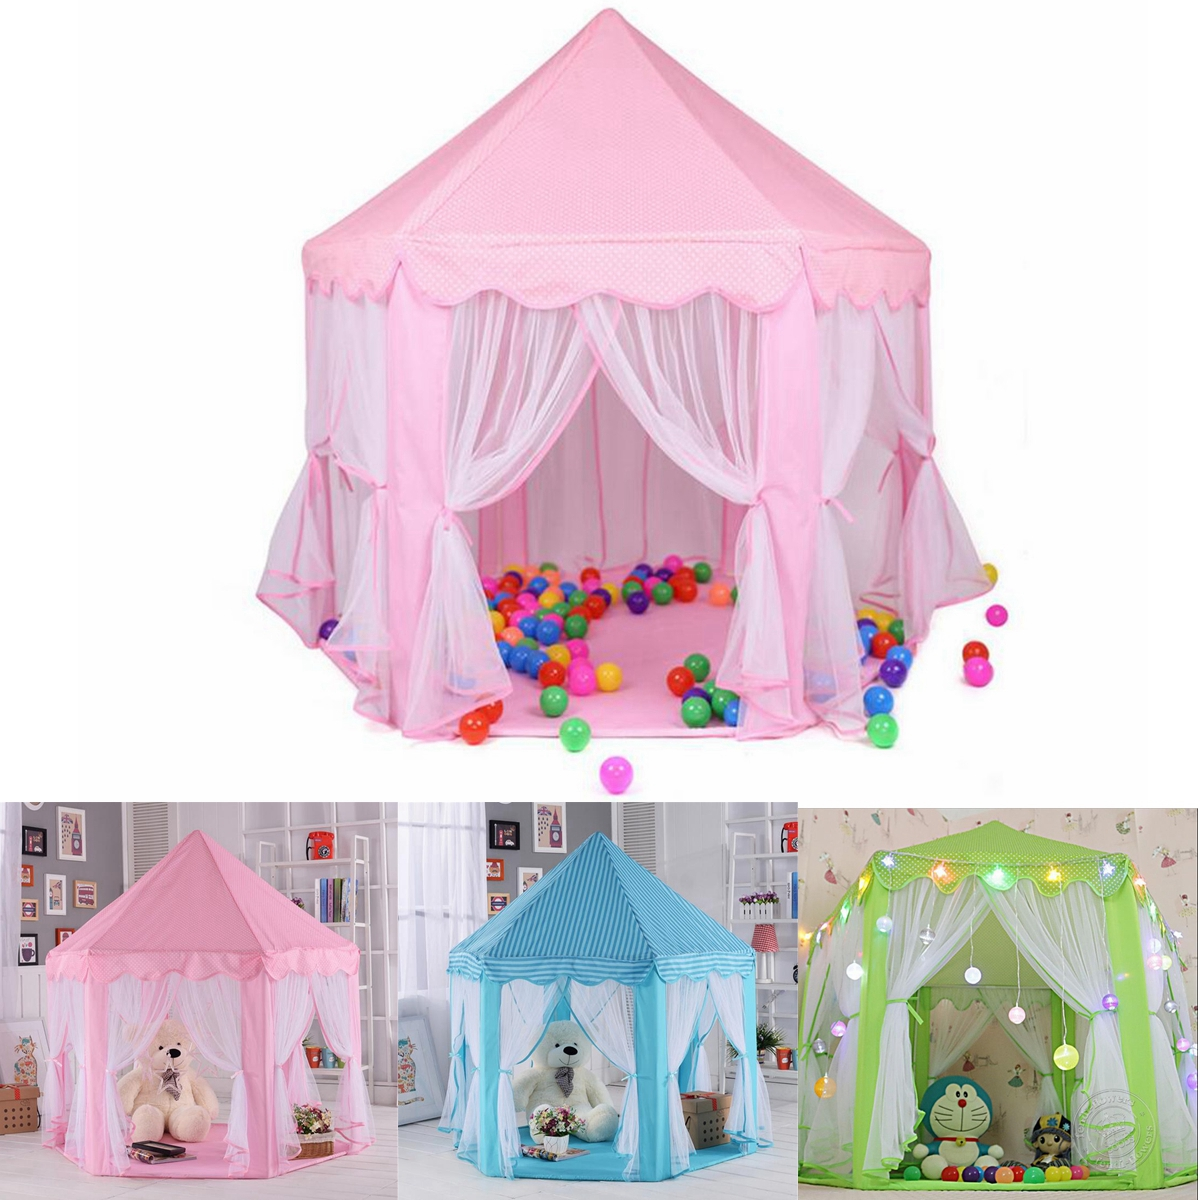 Moaere 55''X53'' Twinkle Star Tabernacle Princess Castle Play Teepee Tent Girls Playhouse Polyester Tipi Perfect Indoor Child Toys